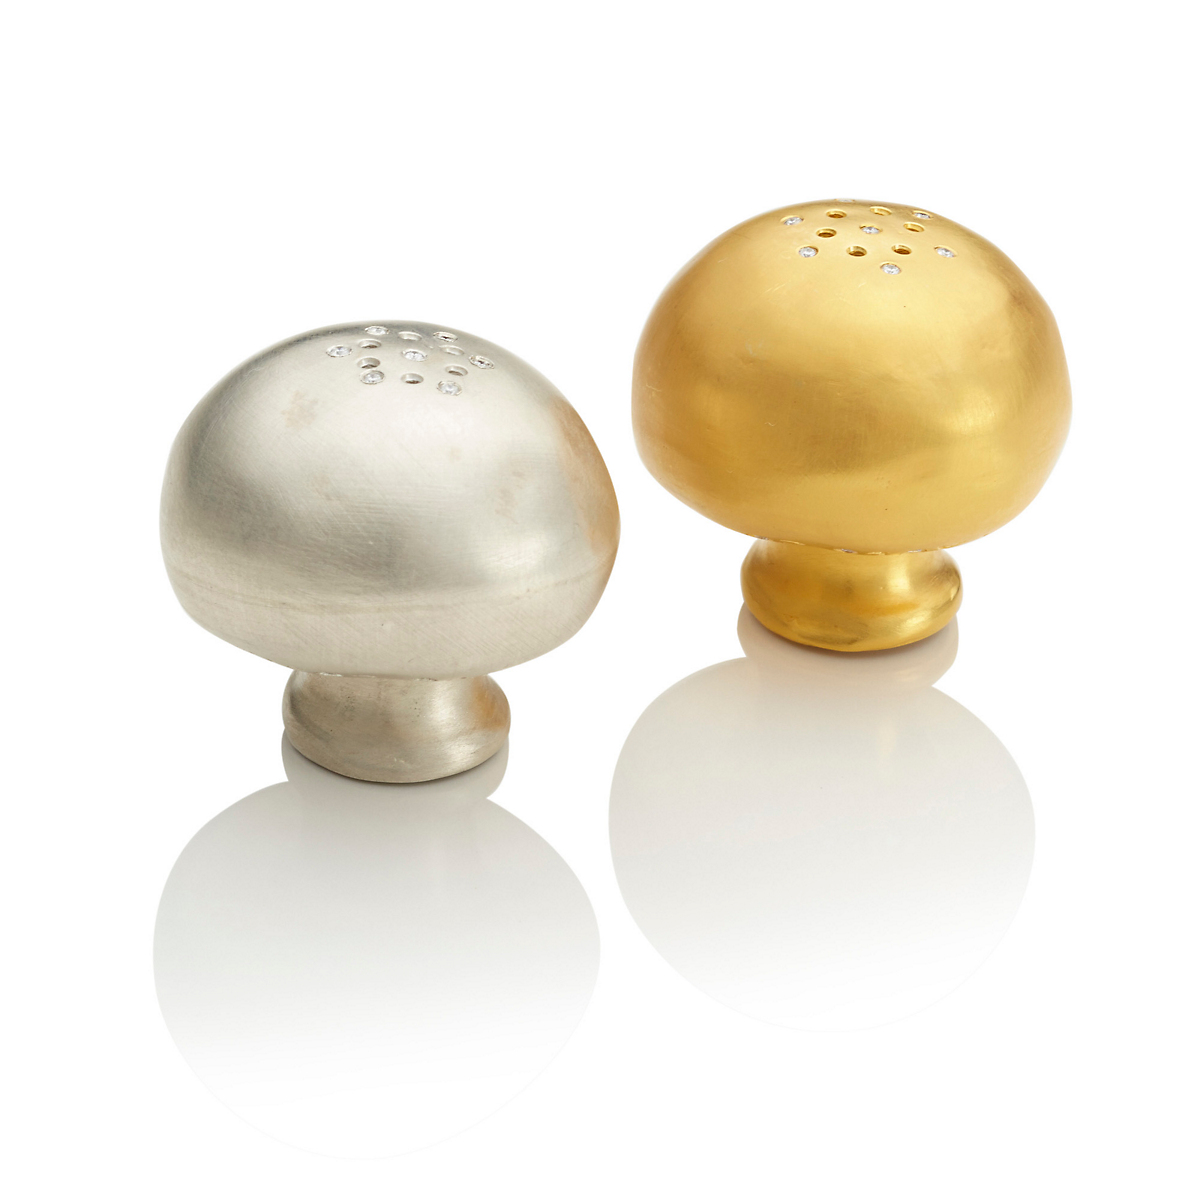 Paolo Costagli Mushroom Salt & Pepper Shakers